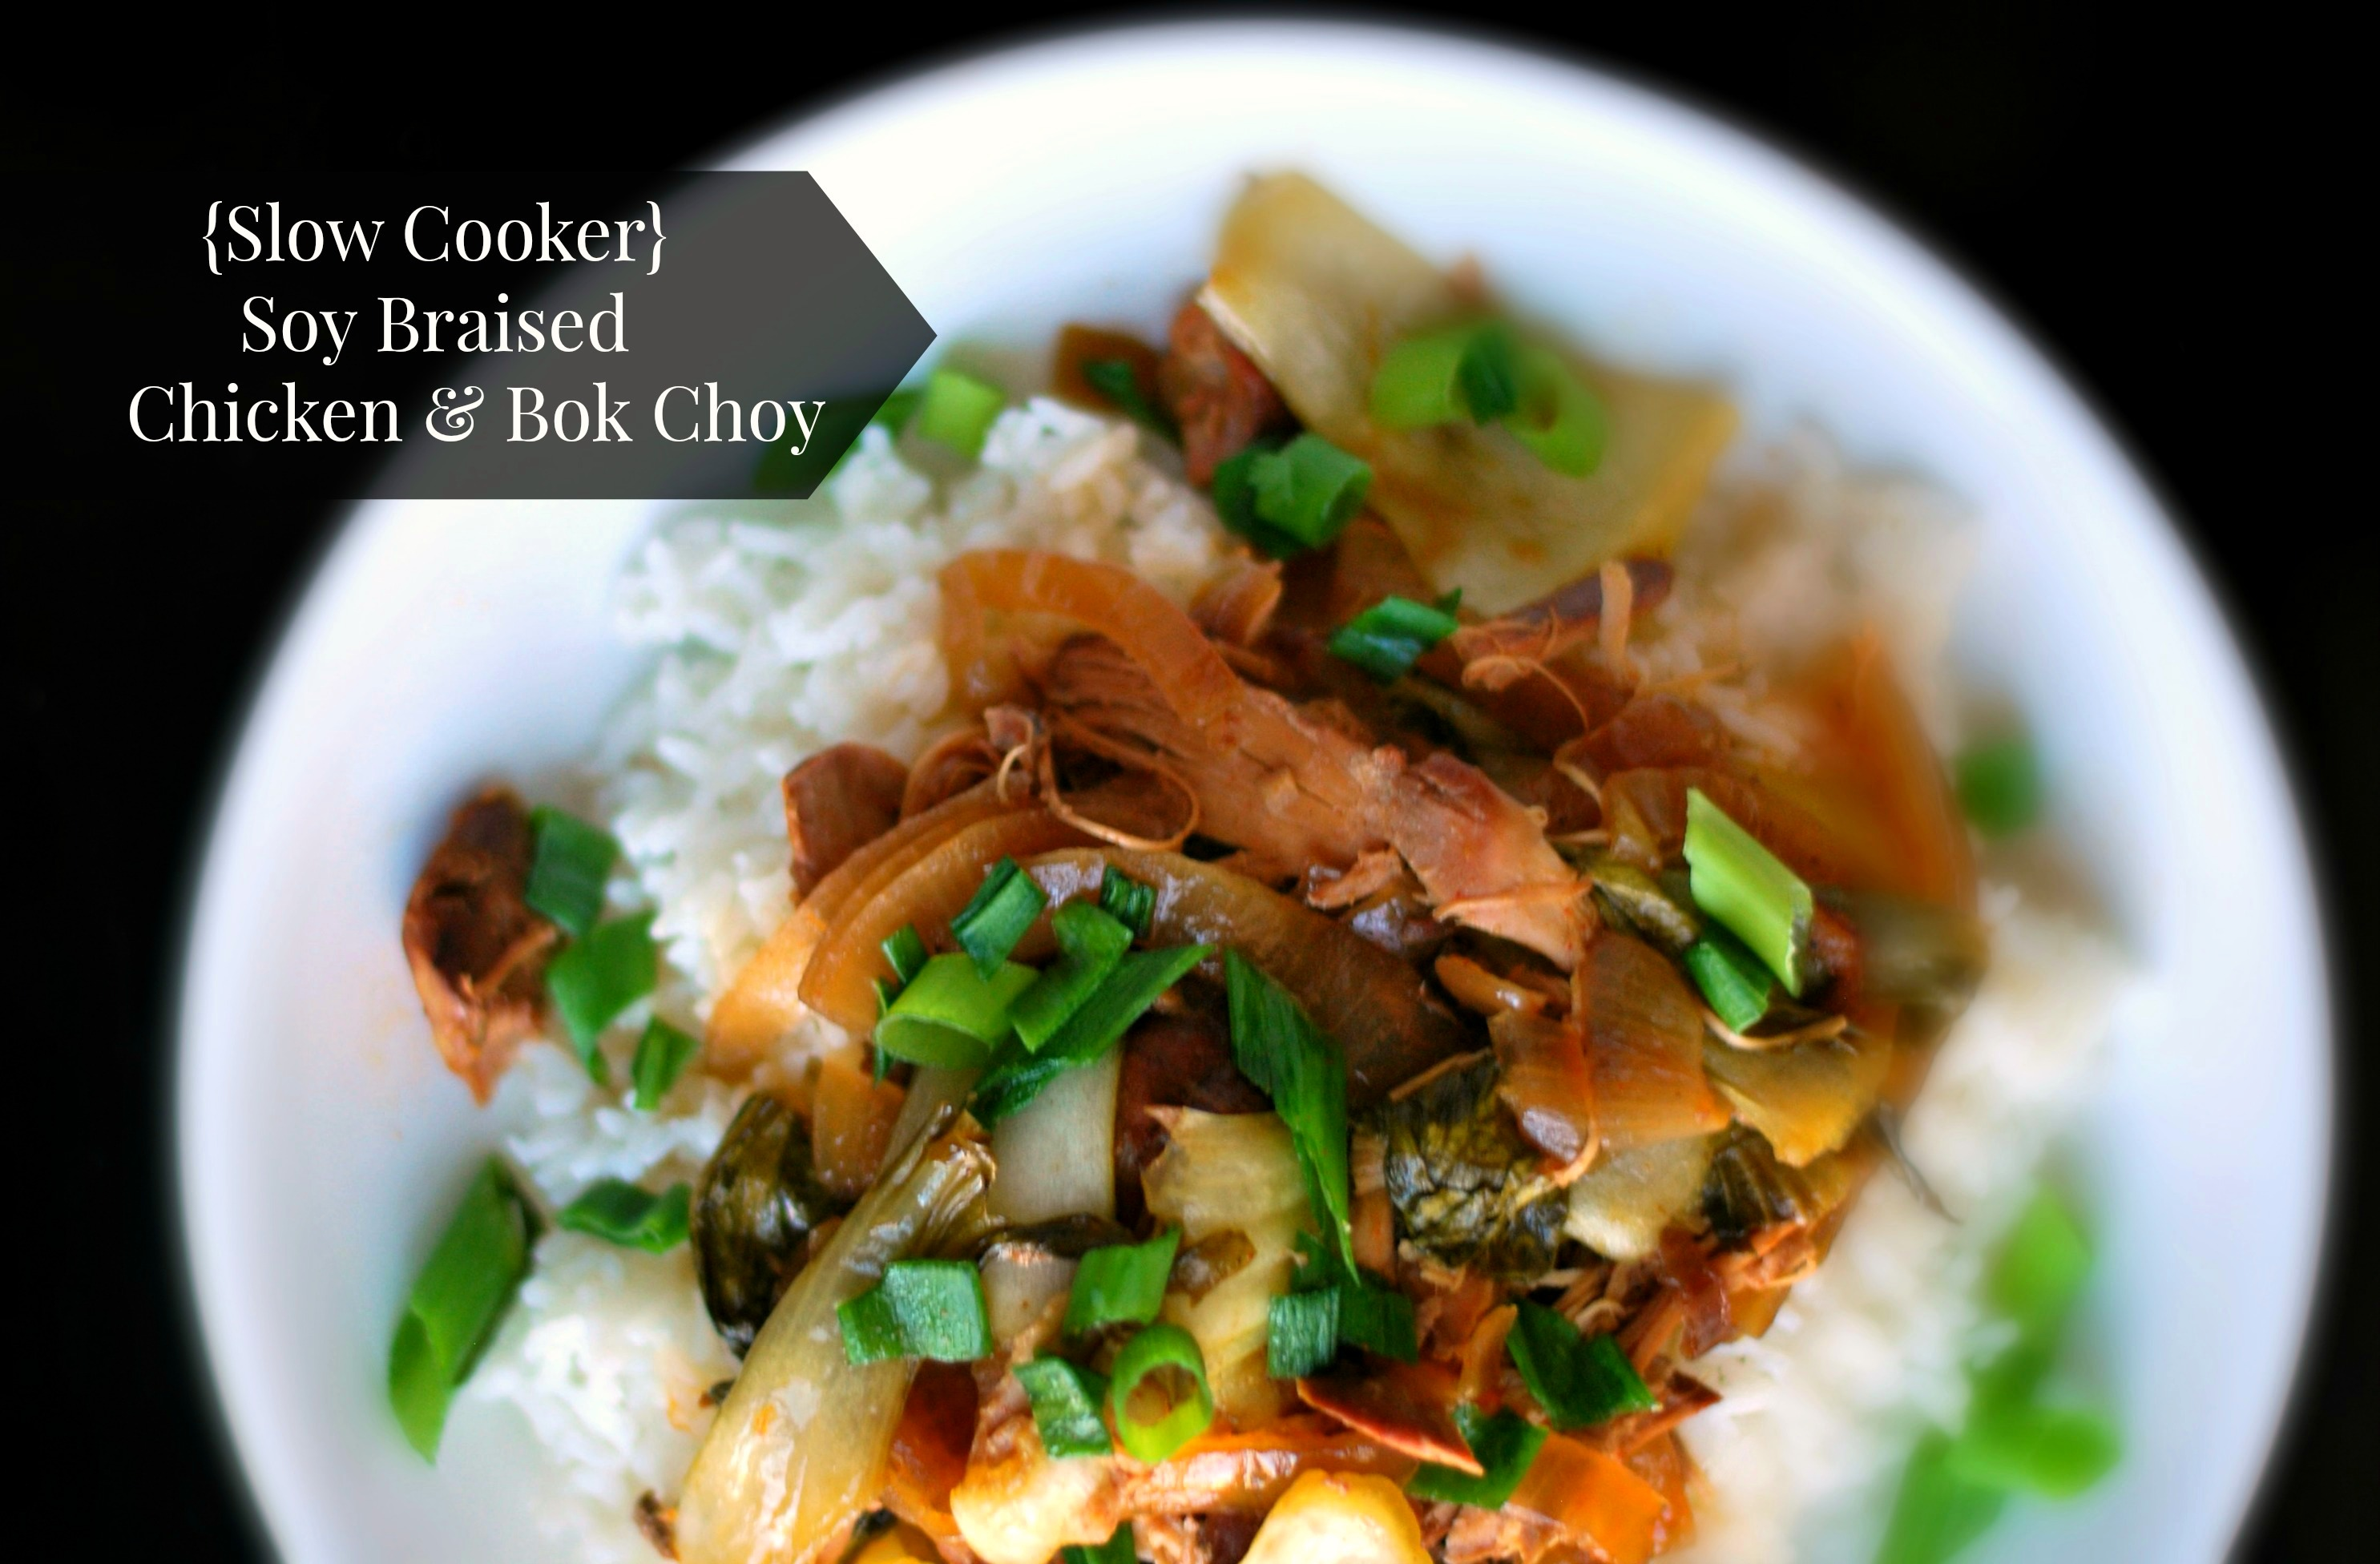 Slow Cooker Soy Braised Chicken & Bok Choy - Aunt Bee's ...